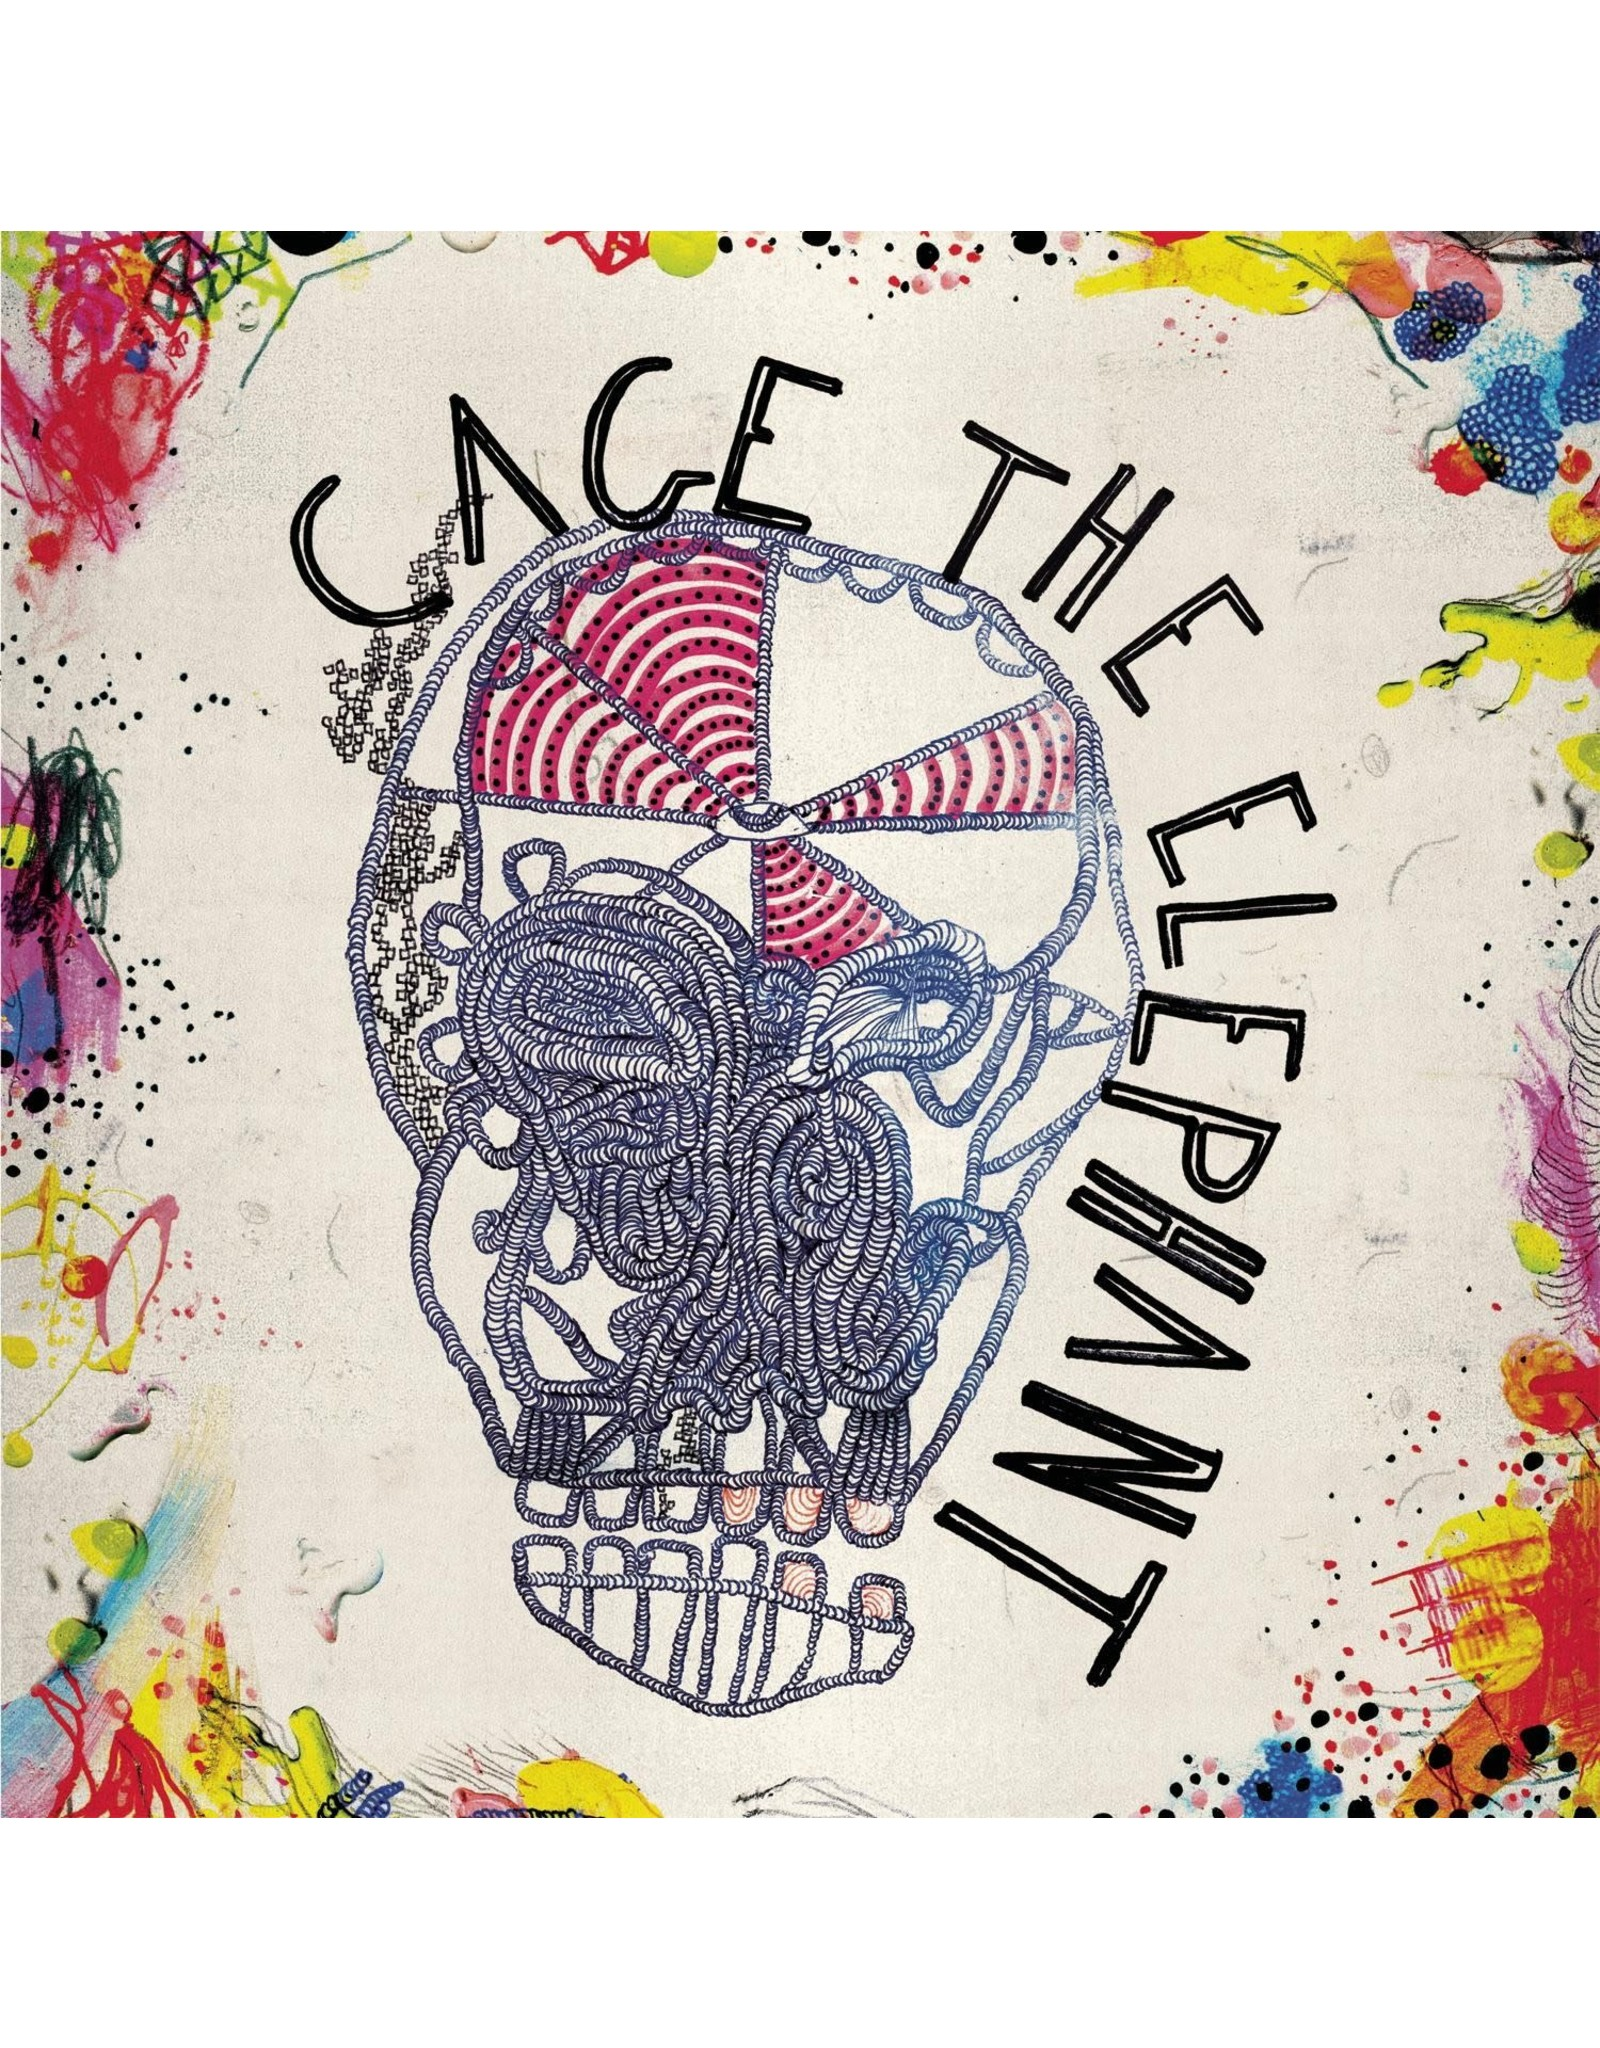 Cage The Elephant - Cage The Elephant (10th Anniversary)